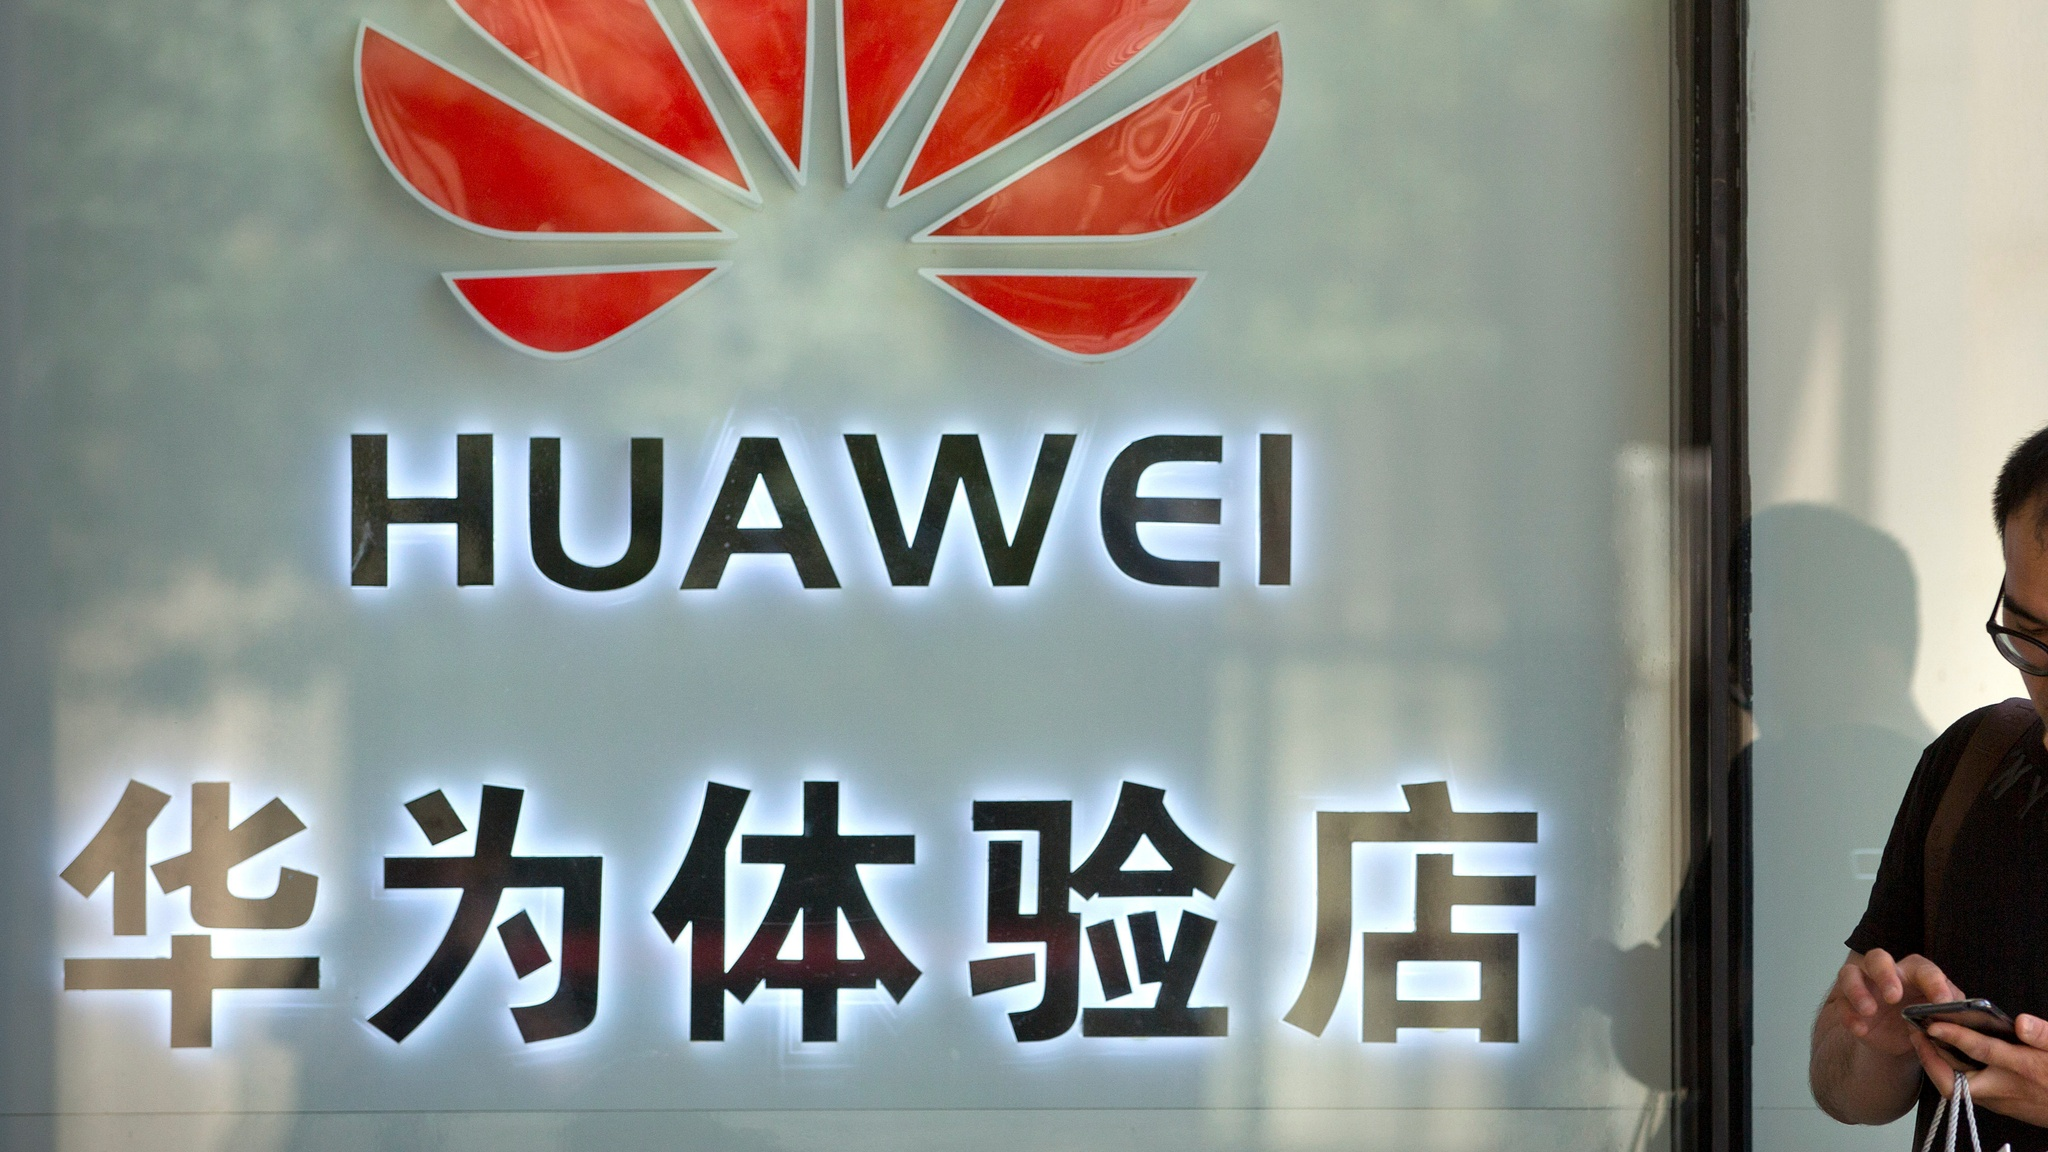 Huawei adds commercial 5G contracts despite US sanctions